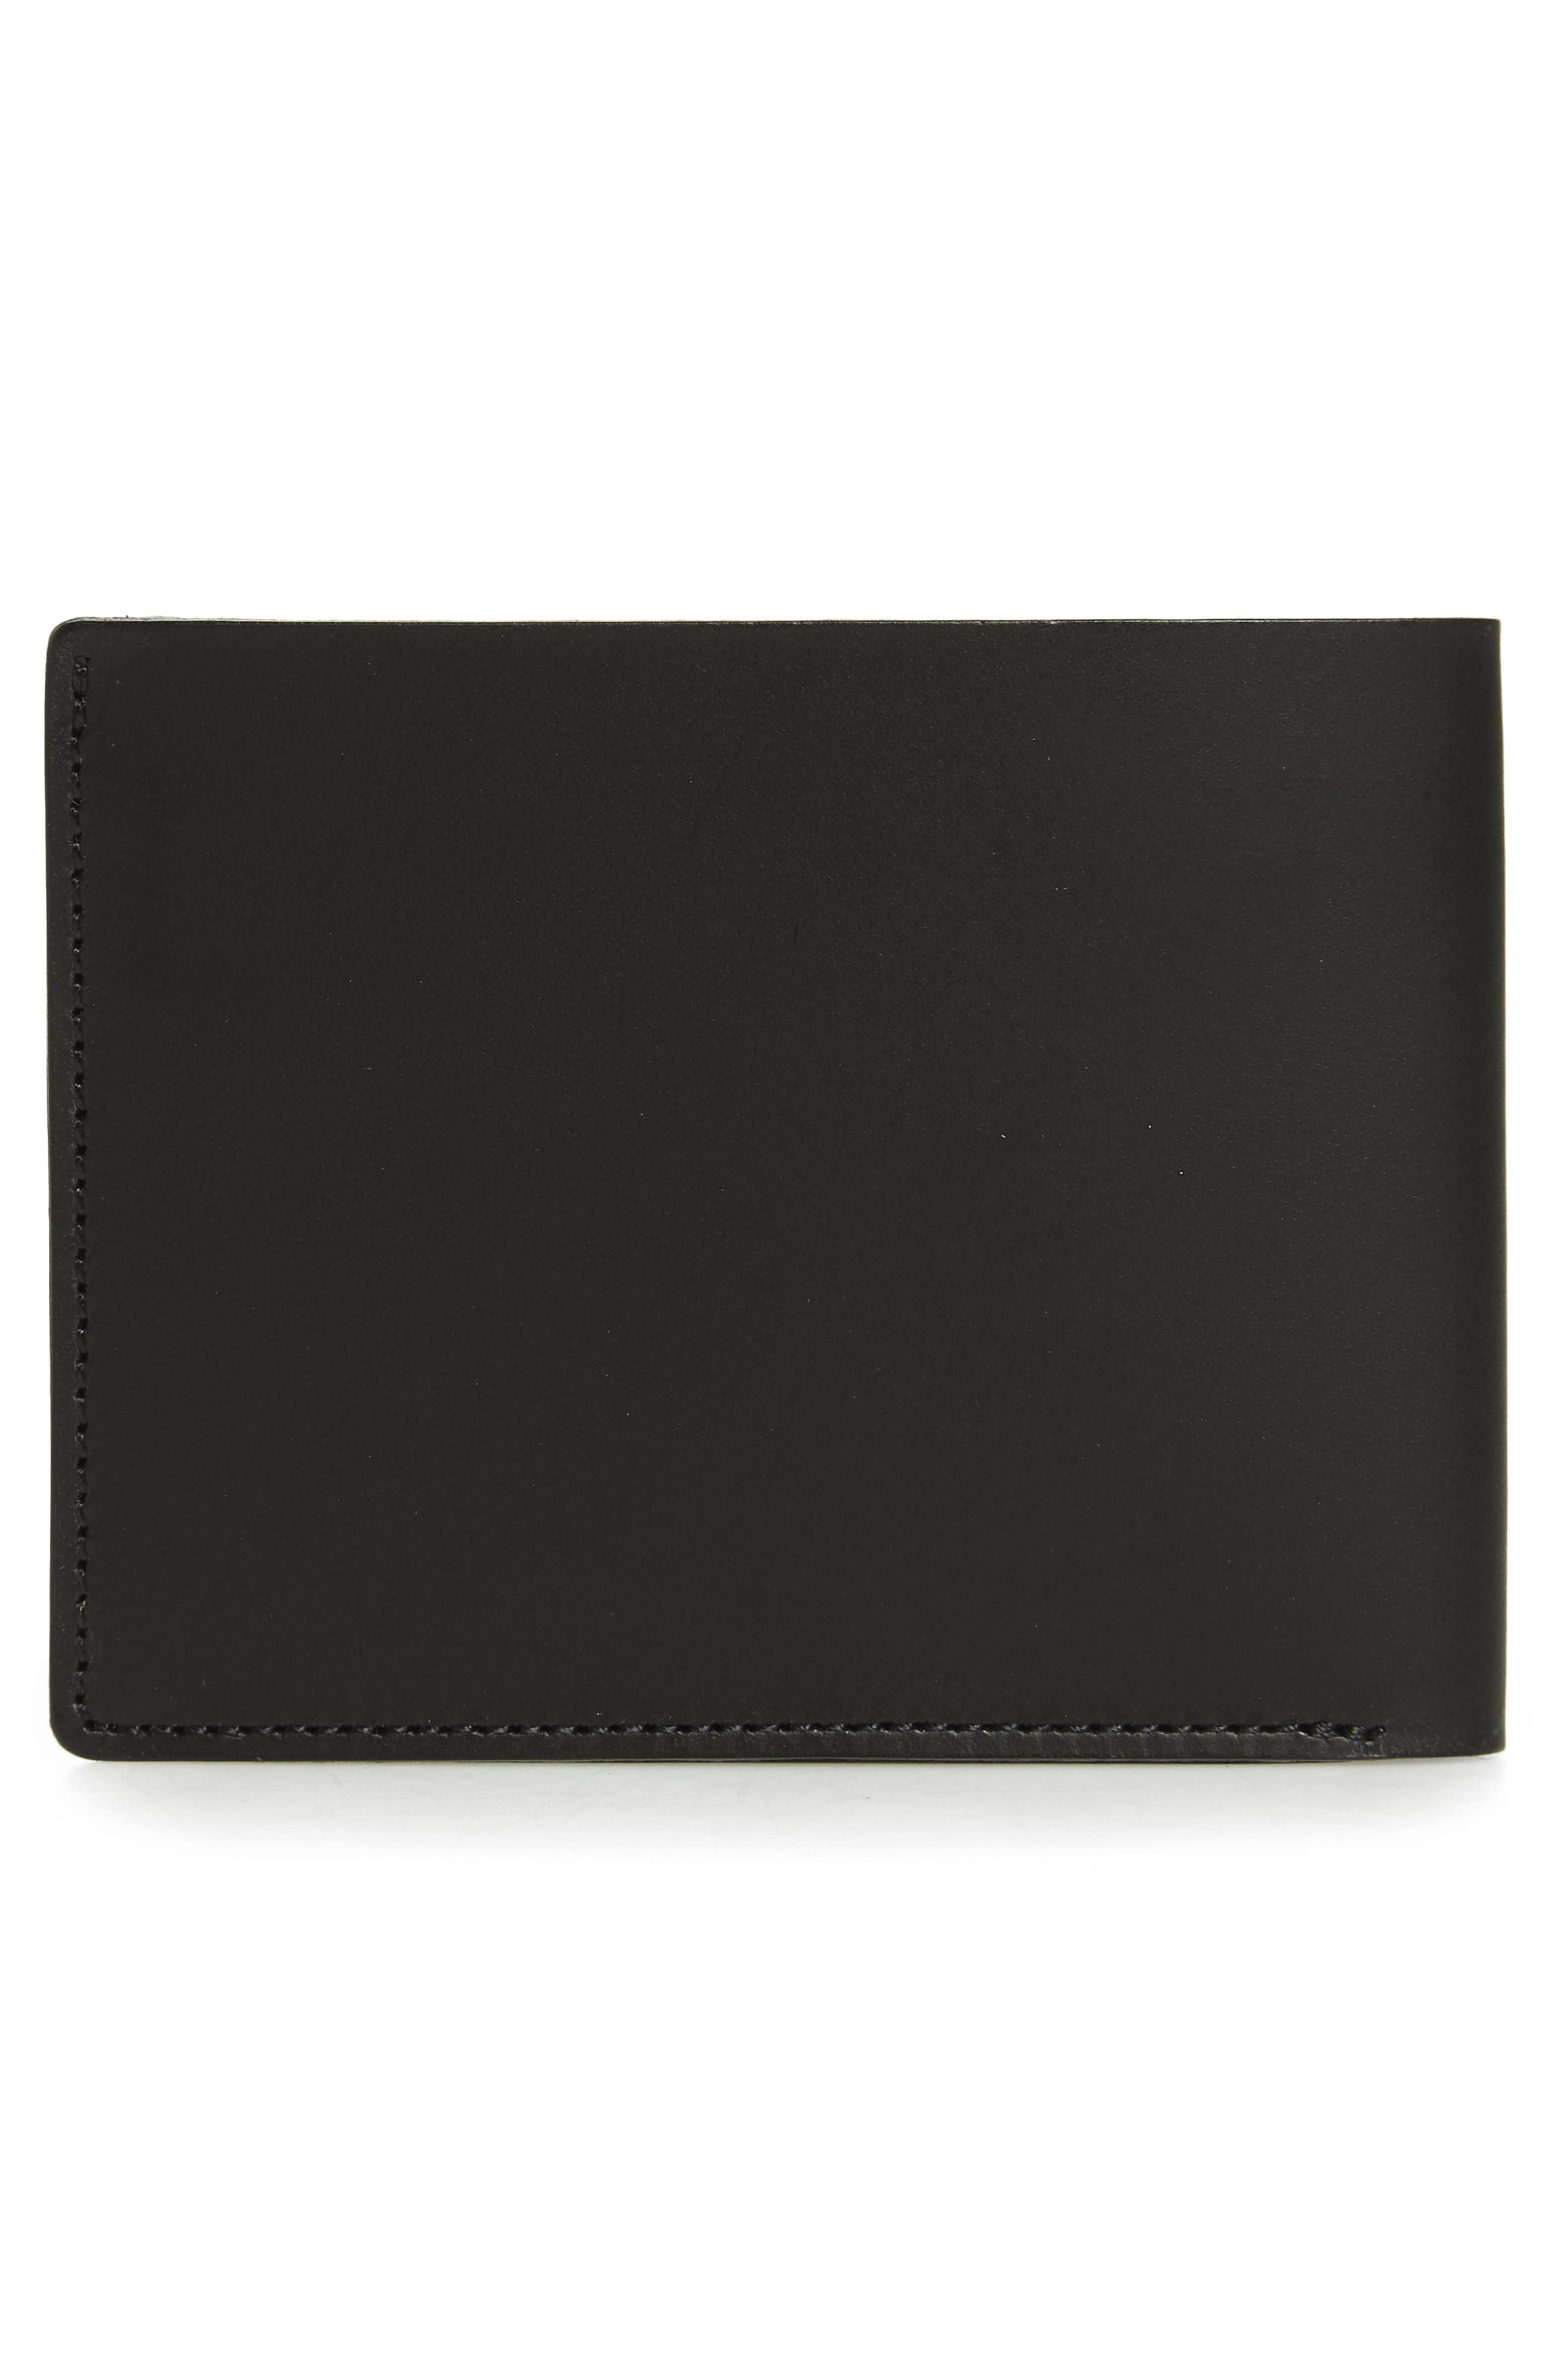 Bifold Leather Wallet,                             Alternate thumbnail 3, color,                             BLACK